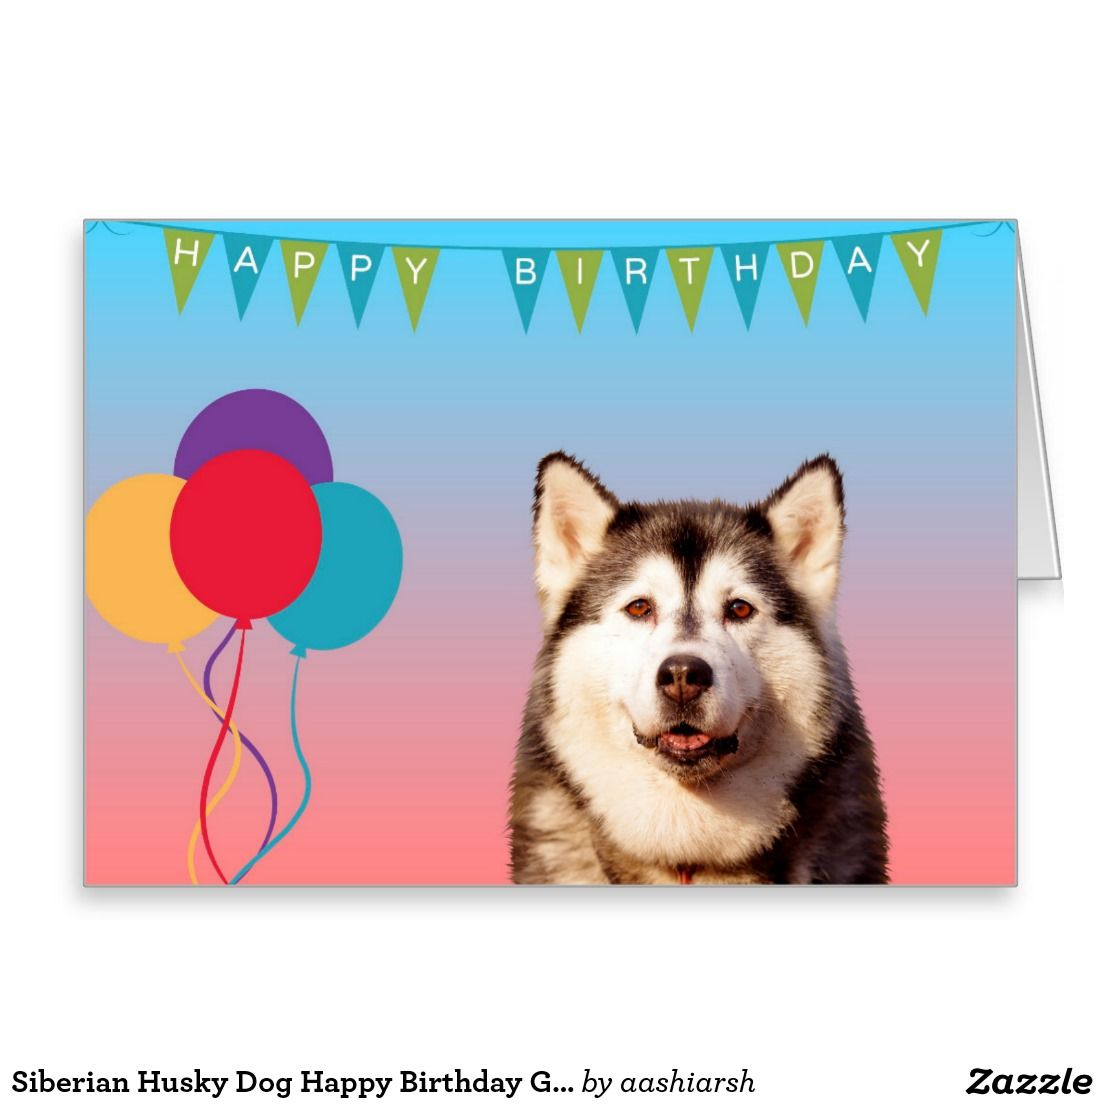 Siberianhusky dog happy birthday greeting card huskies shop siberian husky dog happy birthday greeting card created by aashiarsh kristyandbryce Choice Image